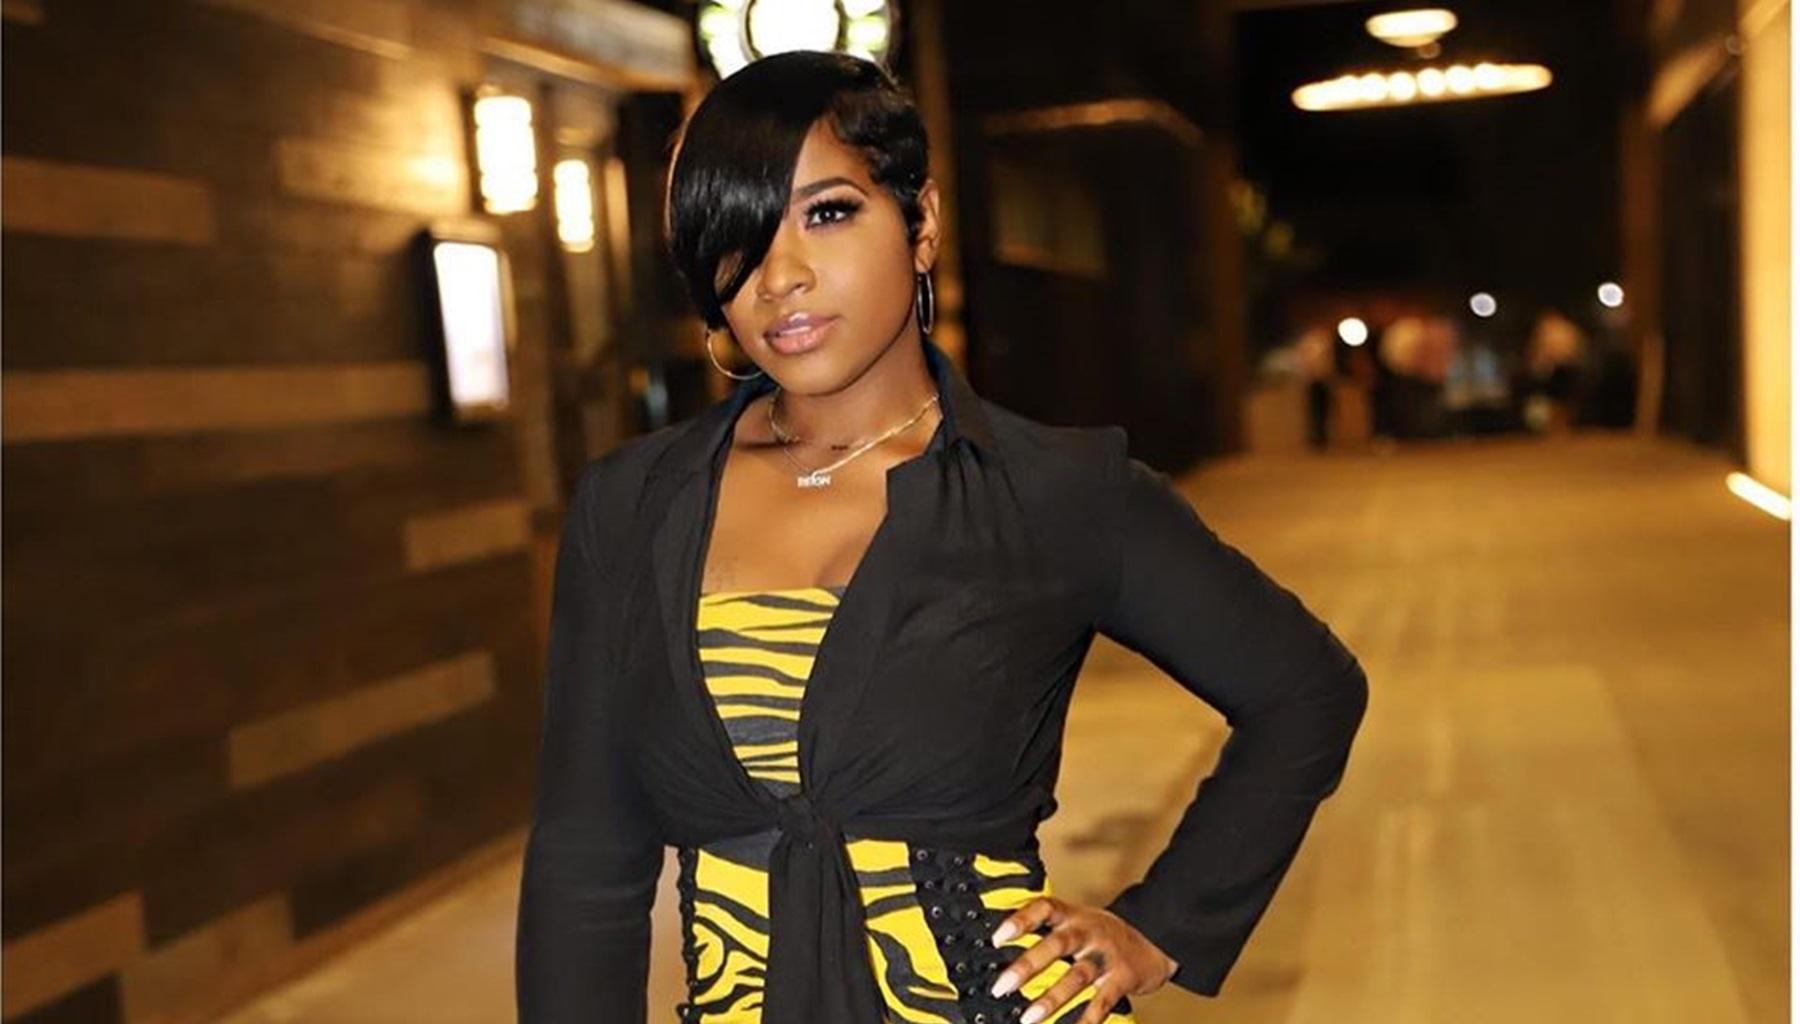 Toya Johnson Makes Fans Happy, Telling Them That She Started Her Own YouTube Channel